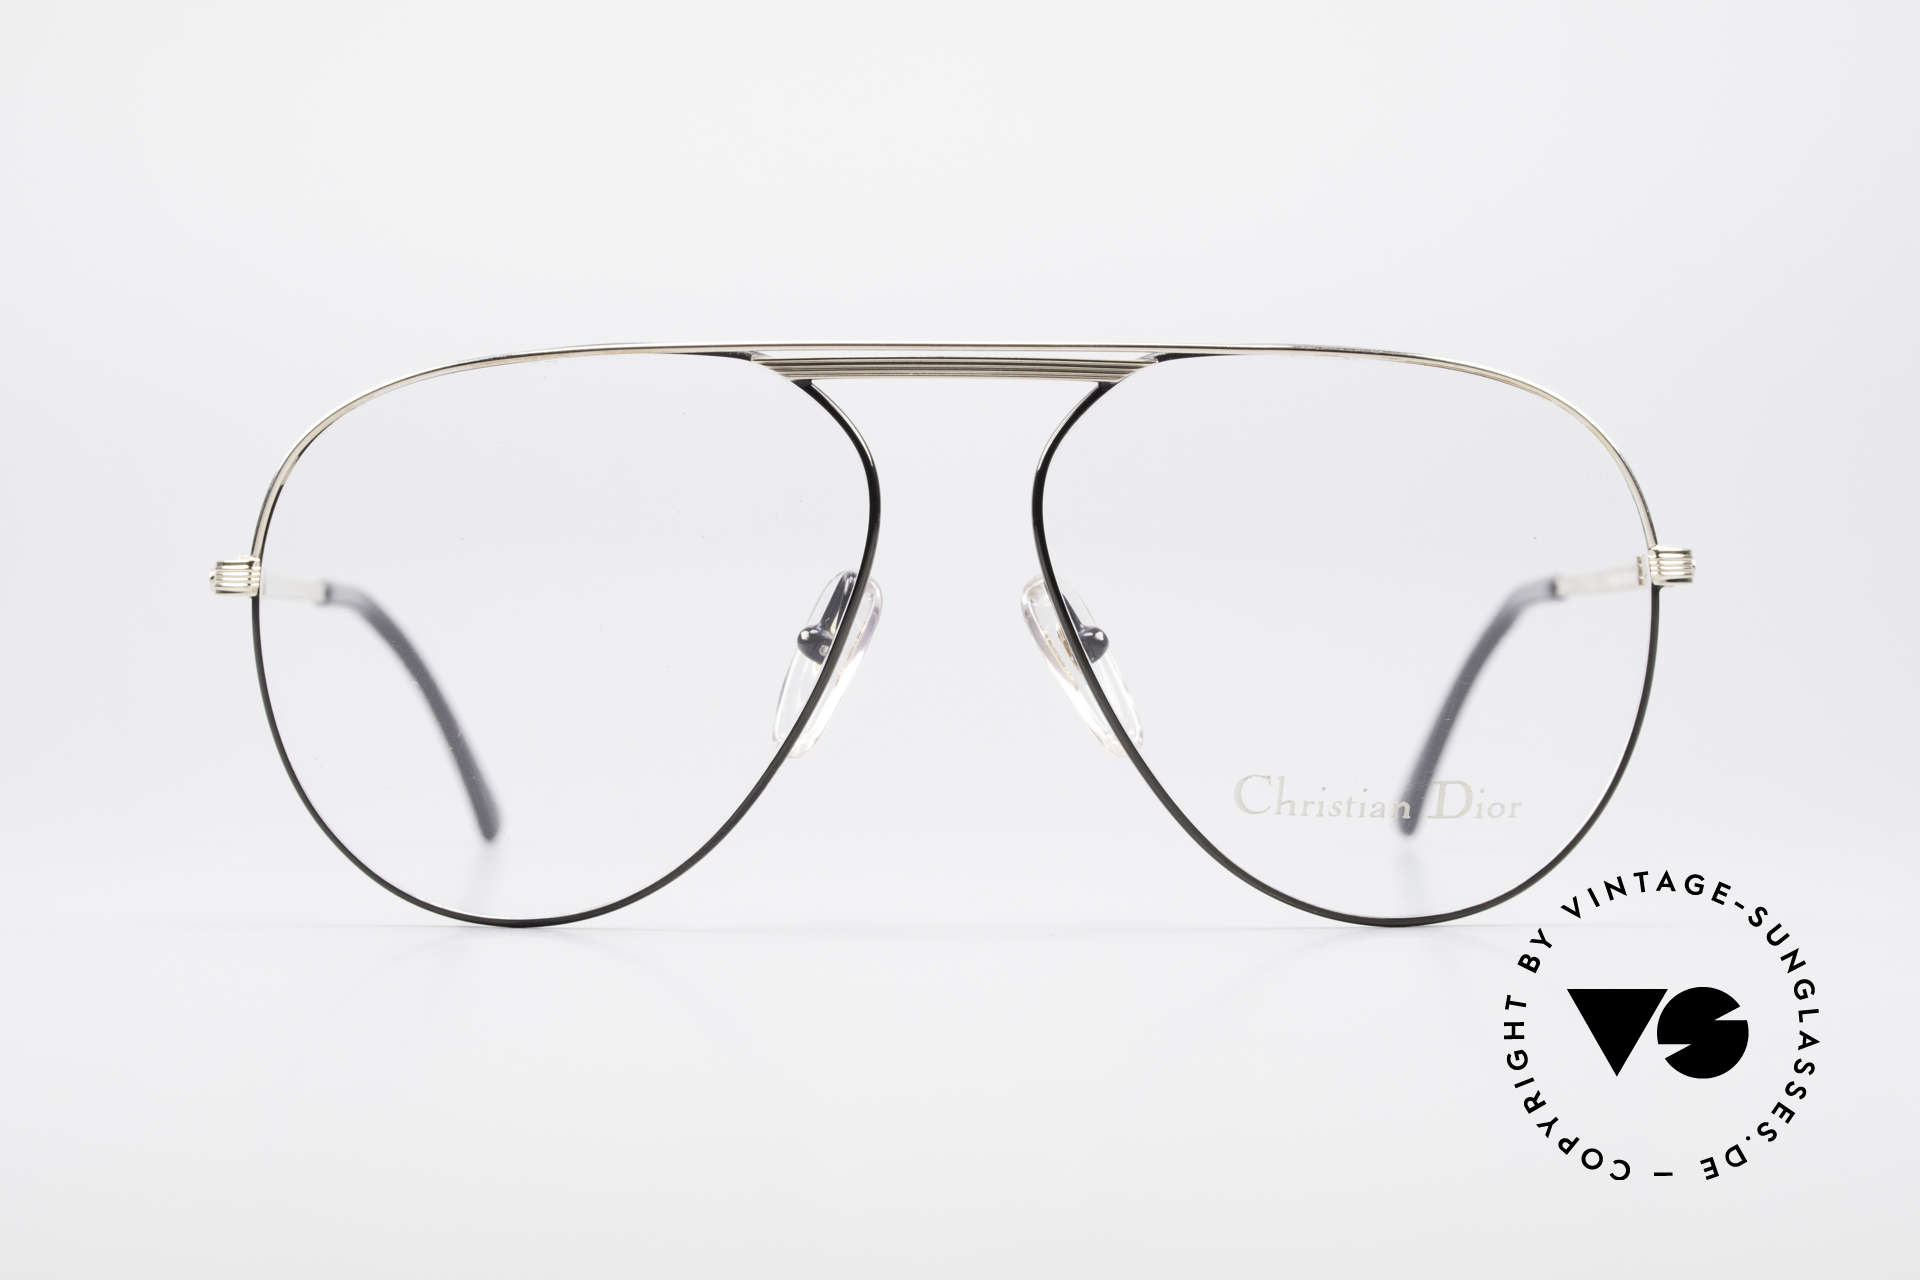 Christian Dior 2536 Vintage Aviator Glasses Men, top quality (bridge & temples are gold-plated), Made for Men